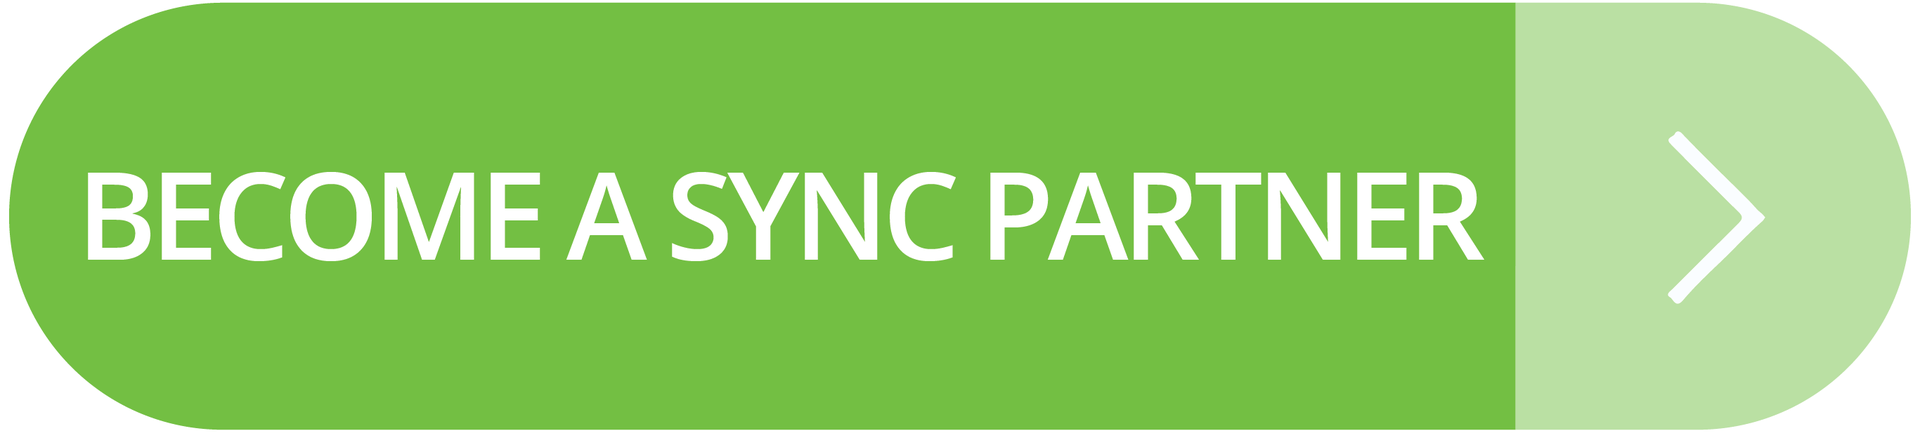 SYNC 2020 Partners - Button